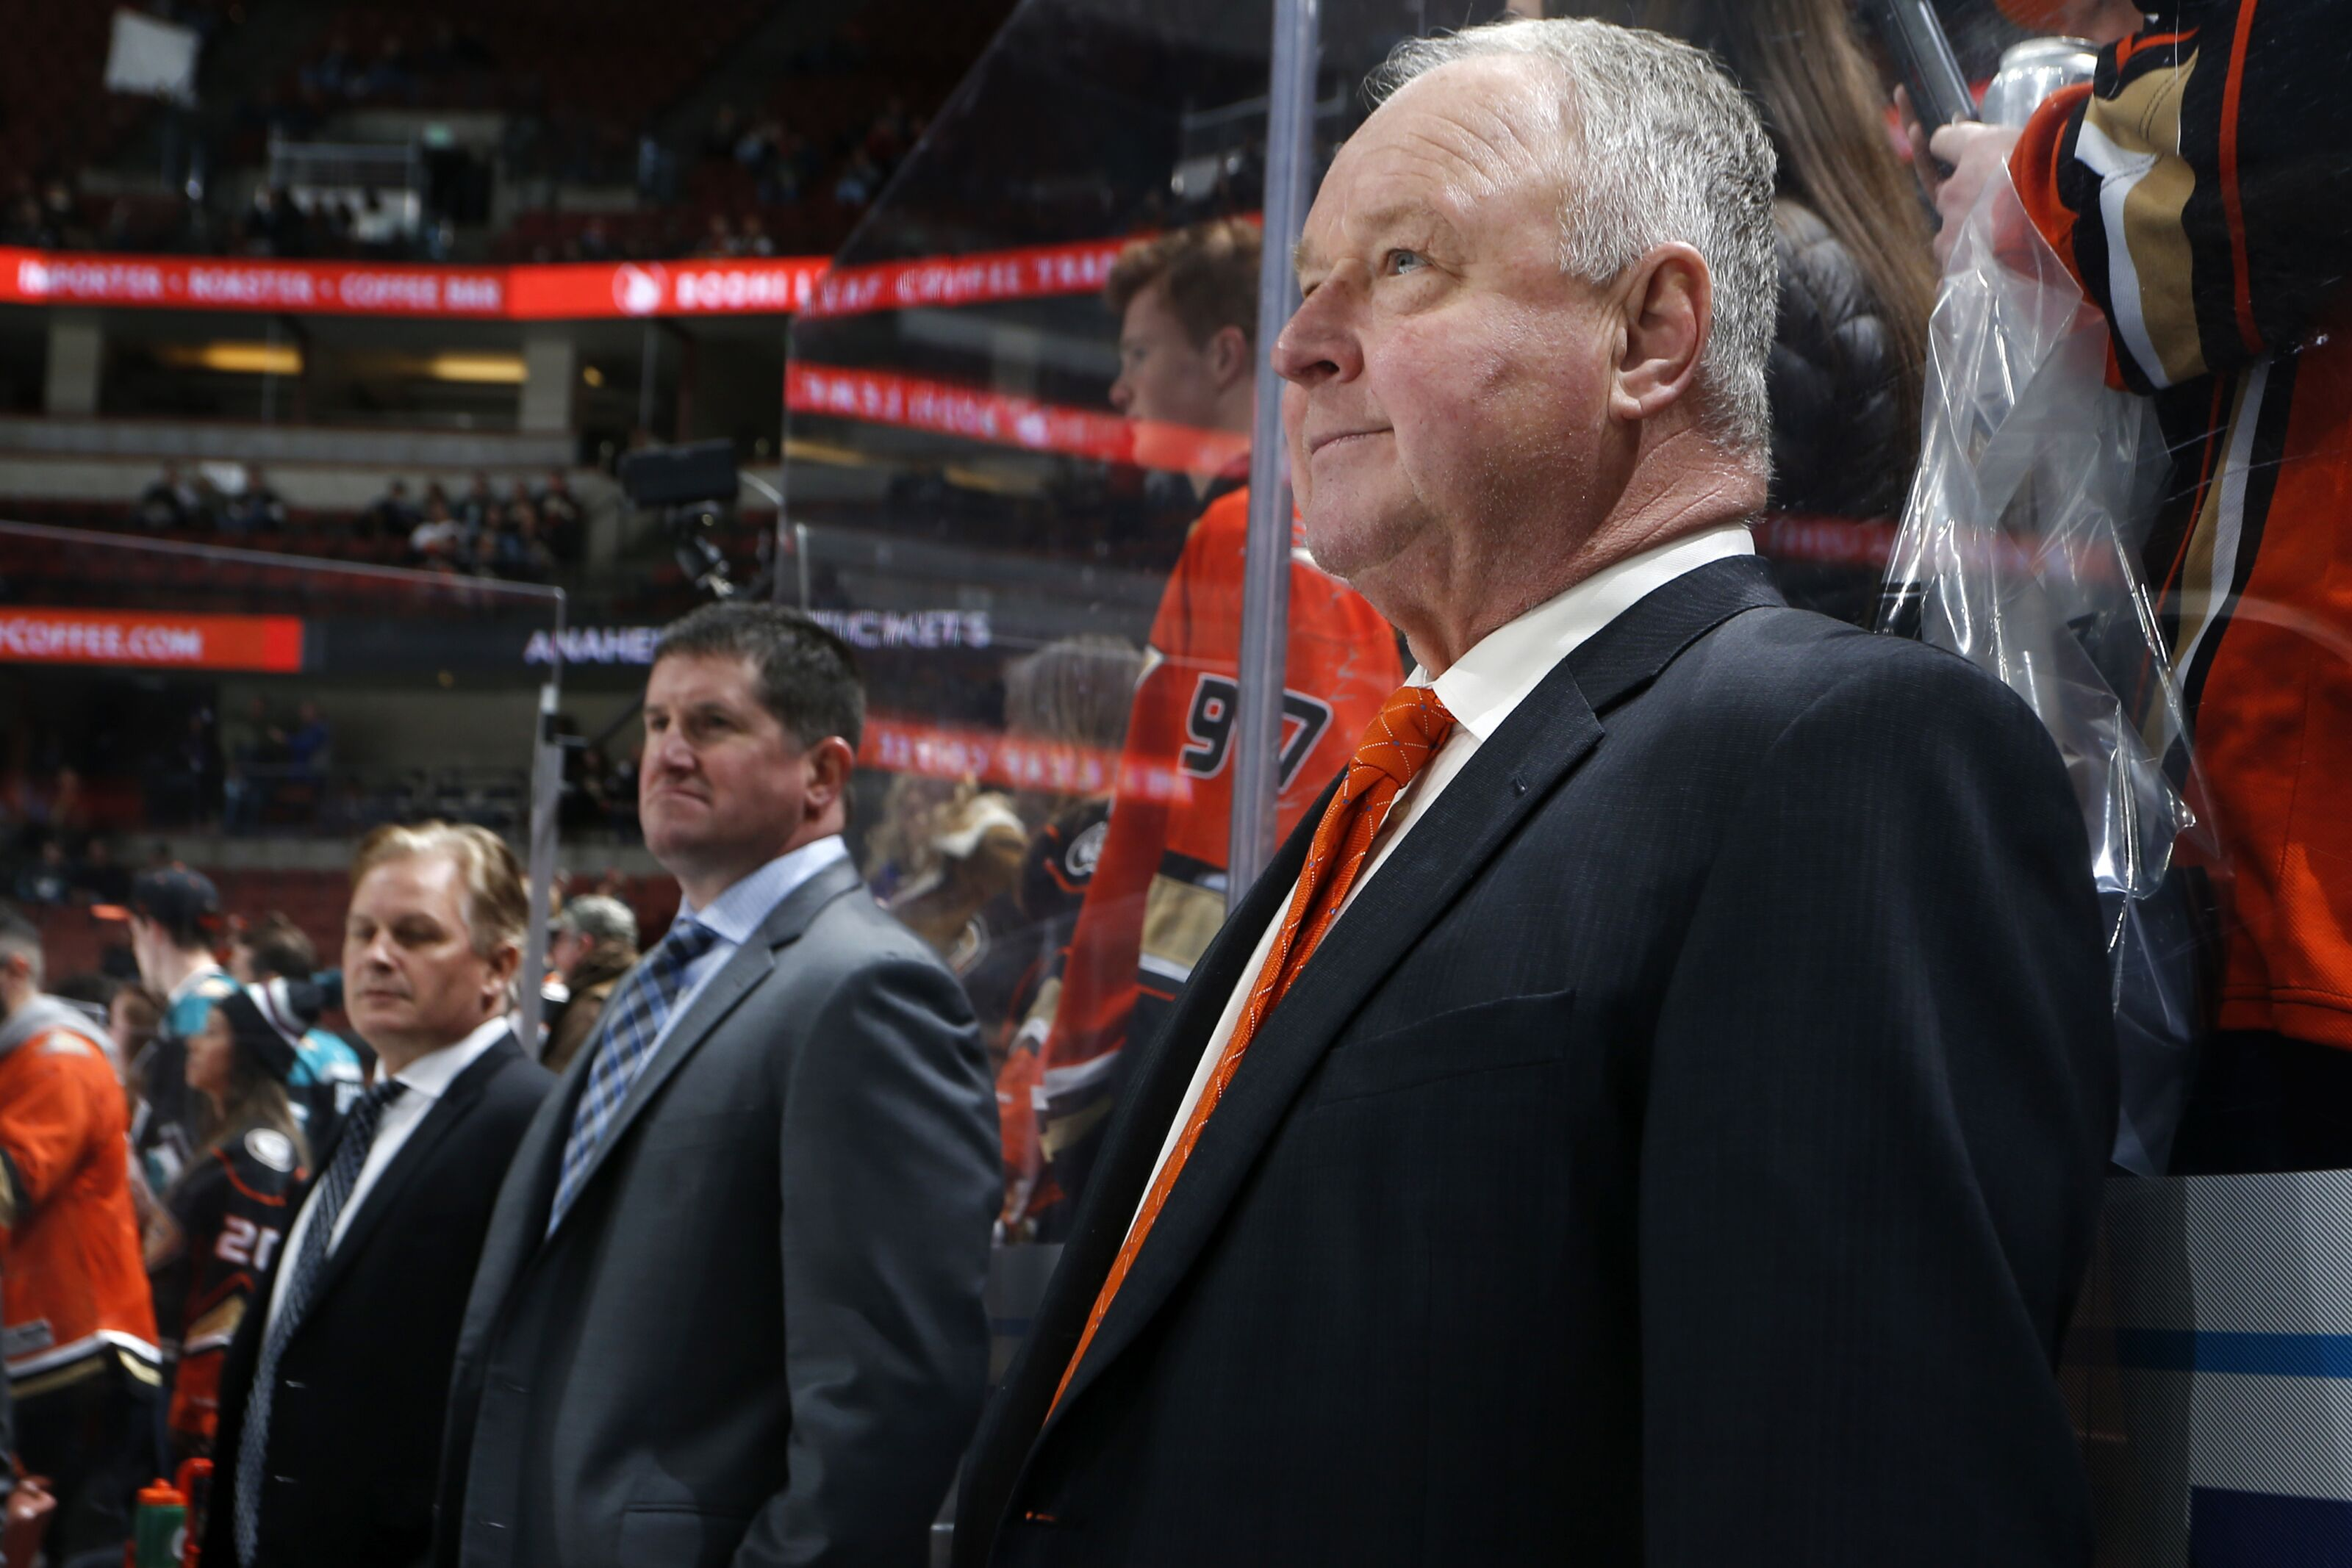 PODCAST: Anaheim Ducks Fire Randy Carlyle, Trade Rumors, and More